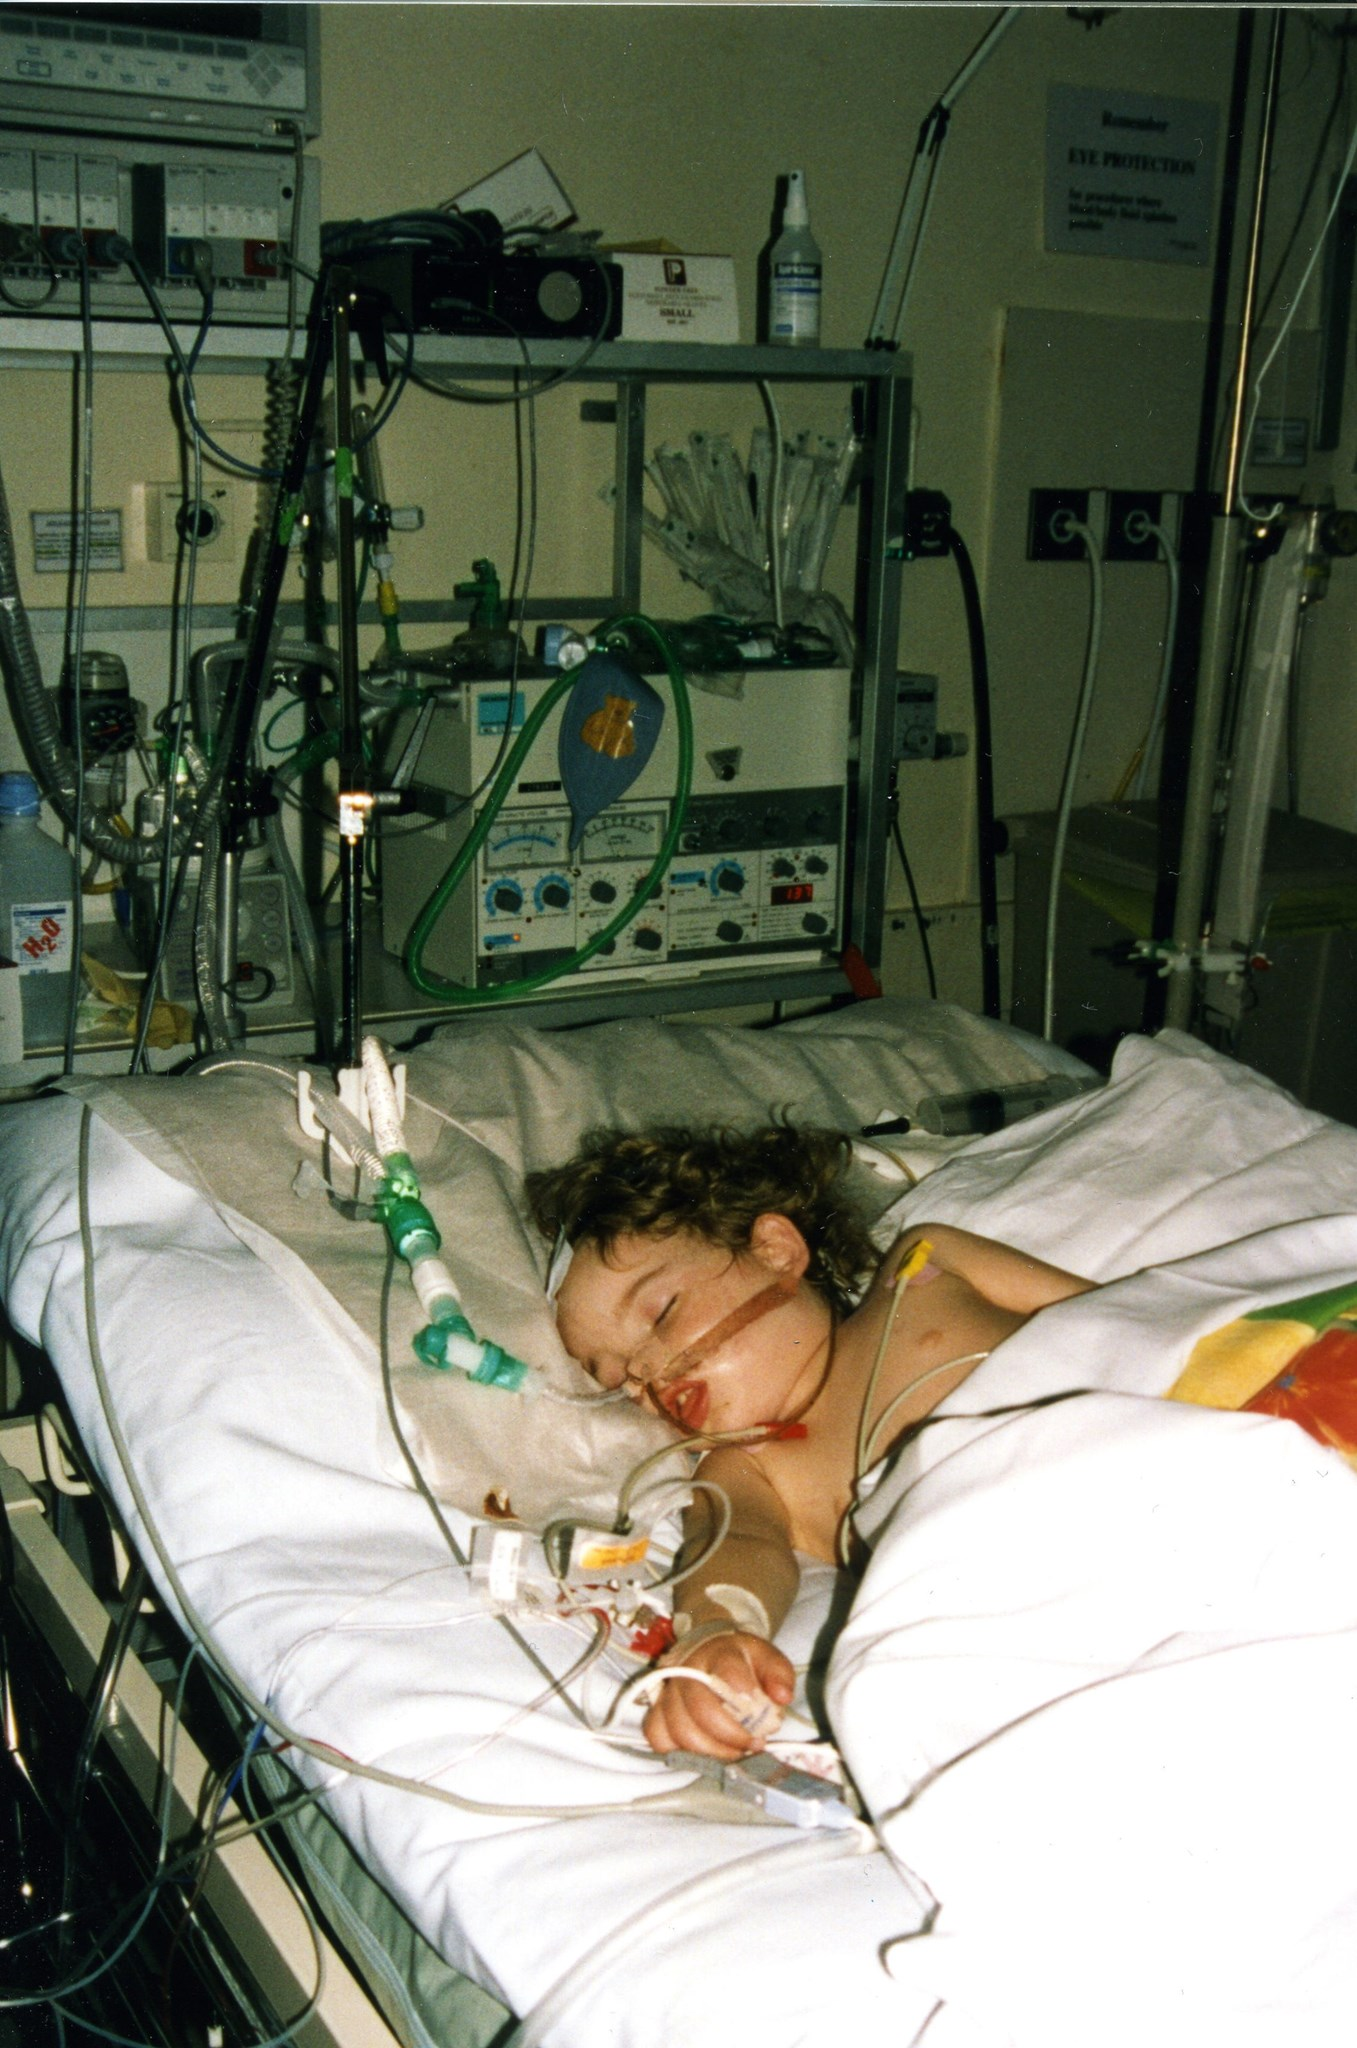 Kara in Intensive Care - so many wires and tubes.